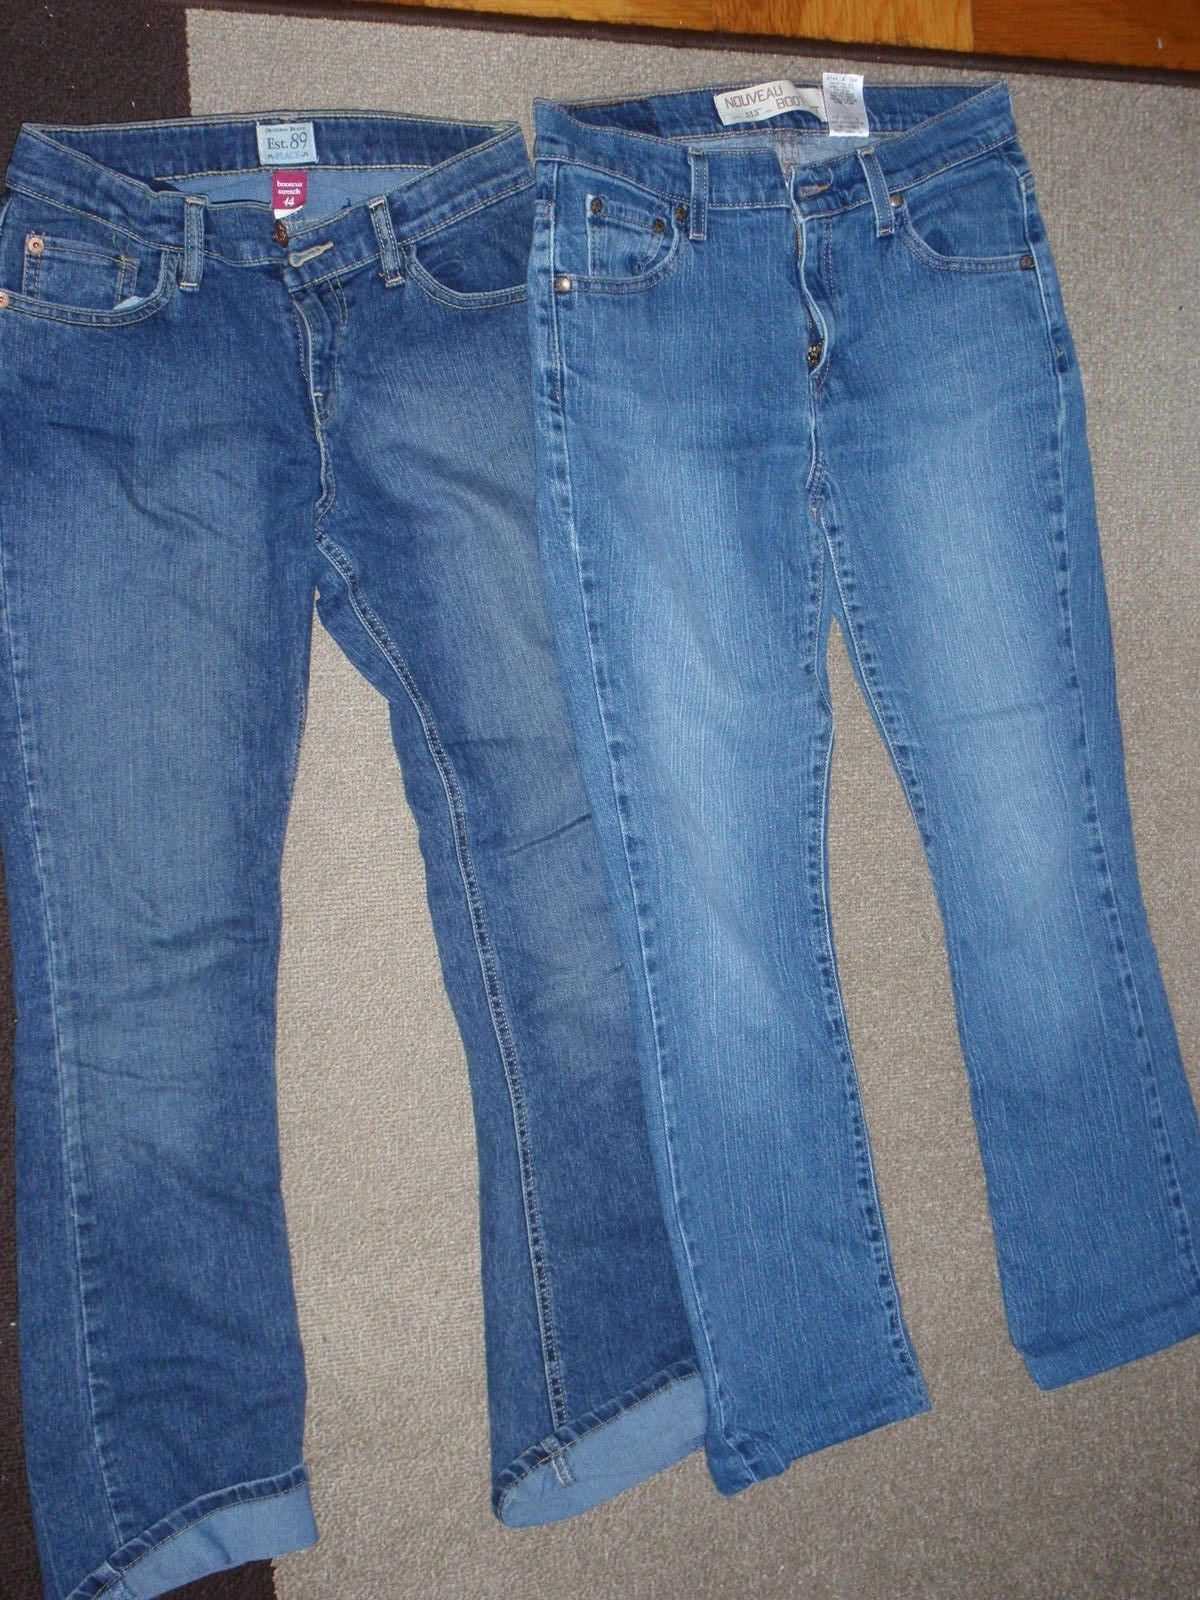 Primary image for TEENS - BLUE JEANS - LEVI'S Womens 6S / Children's Place Girls 14 BOOT CUT